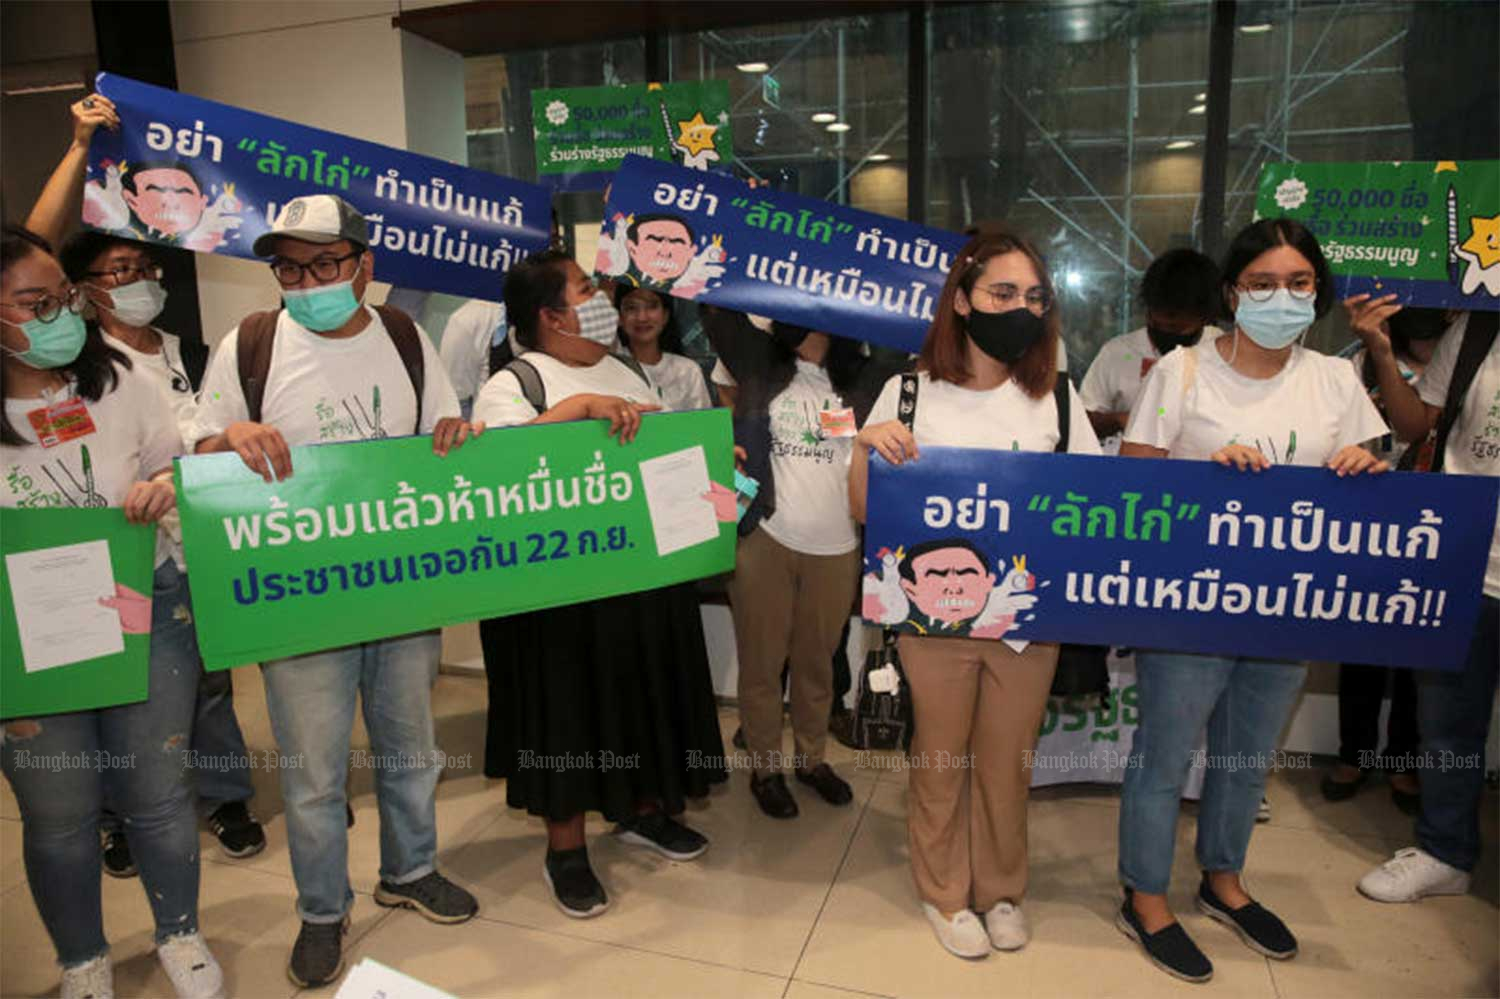 Activists iLaw gather at Parliament on Sept 16 to serve notice that the group has already gathered the 50,000 signatures required to support its version of a bill to draft a new constitution. It will be formally submitted on Tuesday. (Photo by Chanat Katanyu)